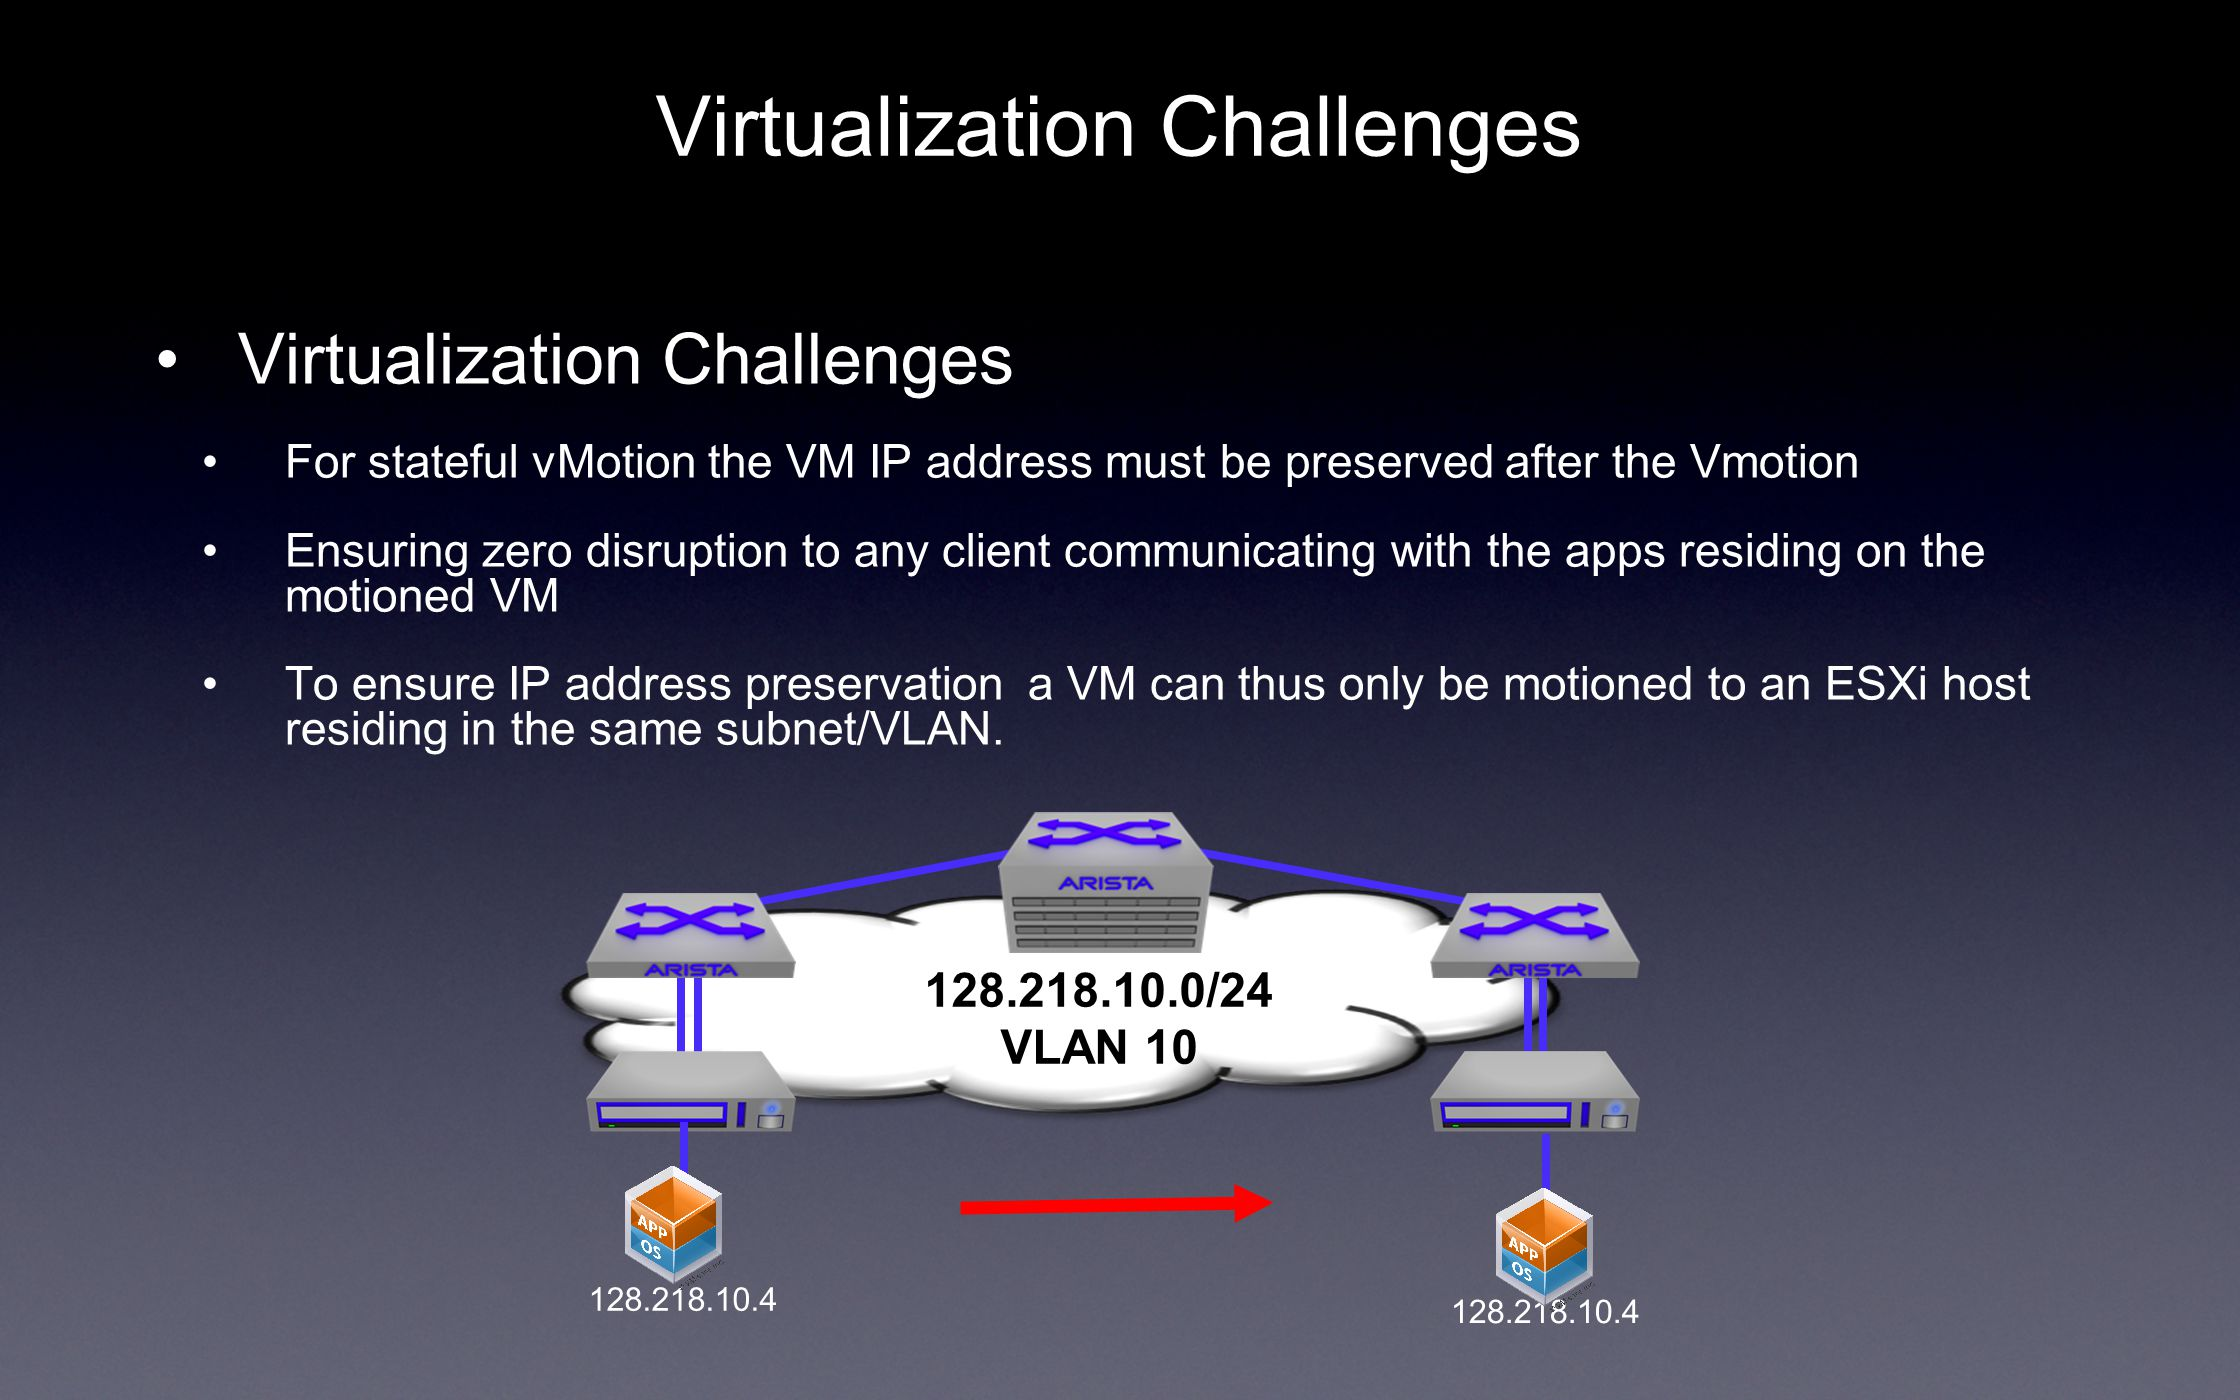 For stateful vMotion the VM IP address must be preserved after the Vmotion Ensuring zero disruption to any client communicating with the apps residing on the motioned VM To ensure IP address preservation a VM can thus only be motioned to an ESXi host residing in the same subnet/VLAN.